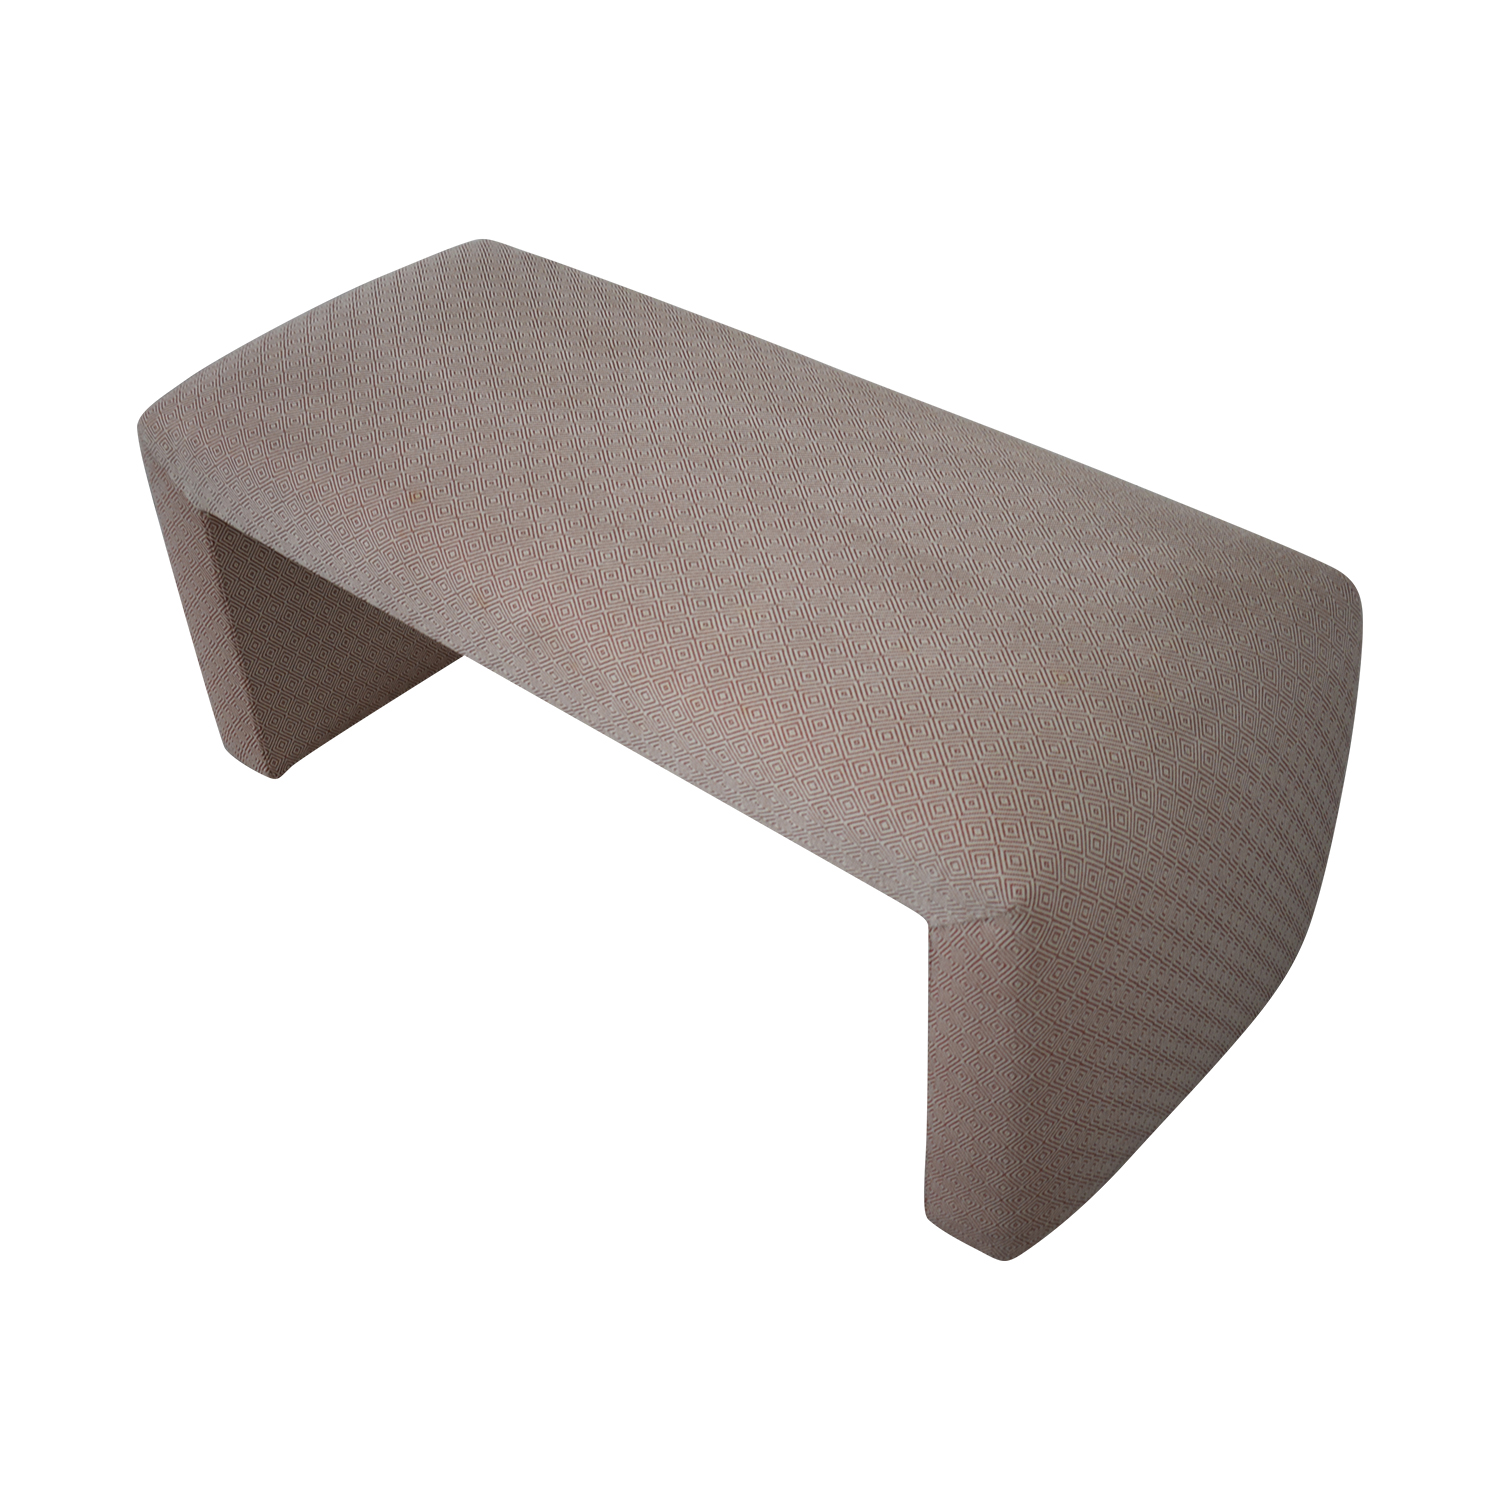 Custom Upholstered Bench / Benches